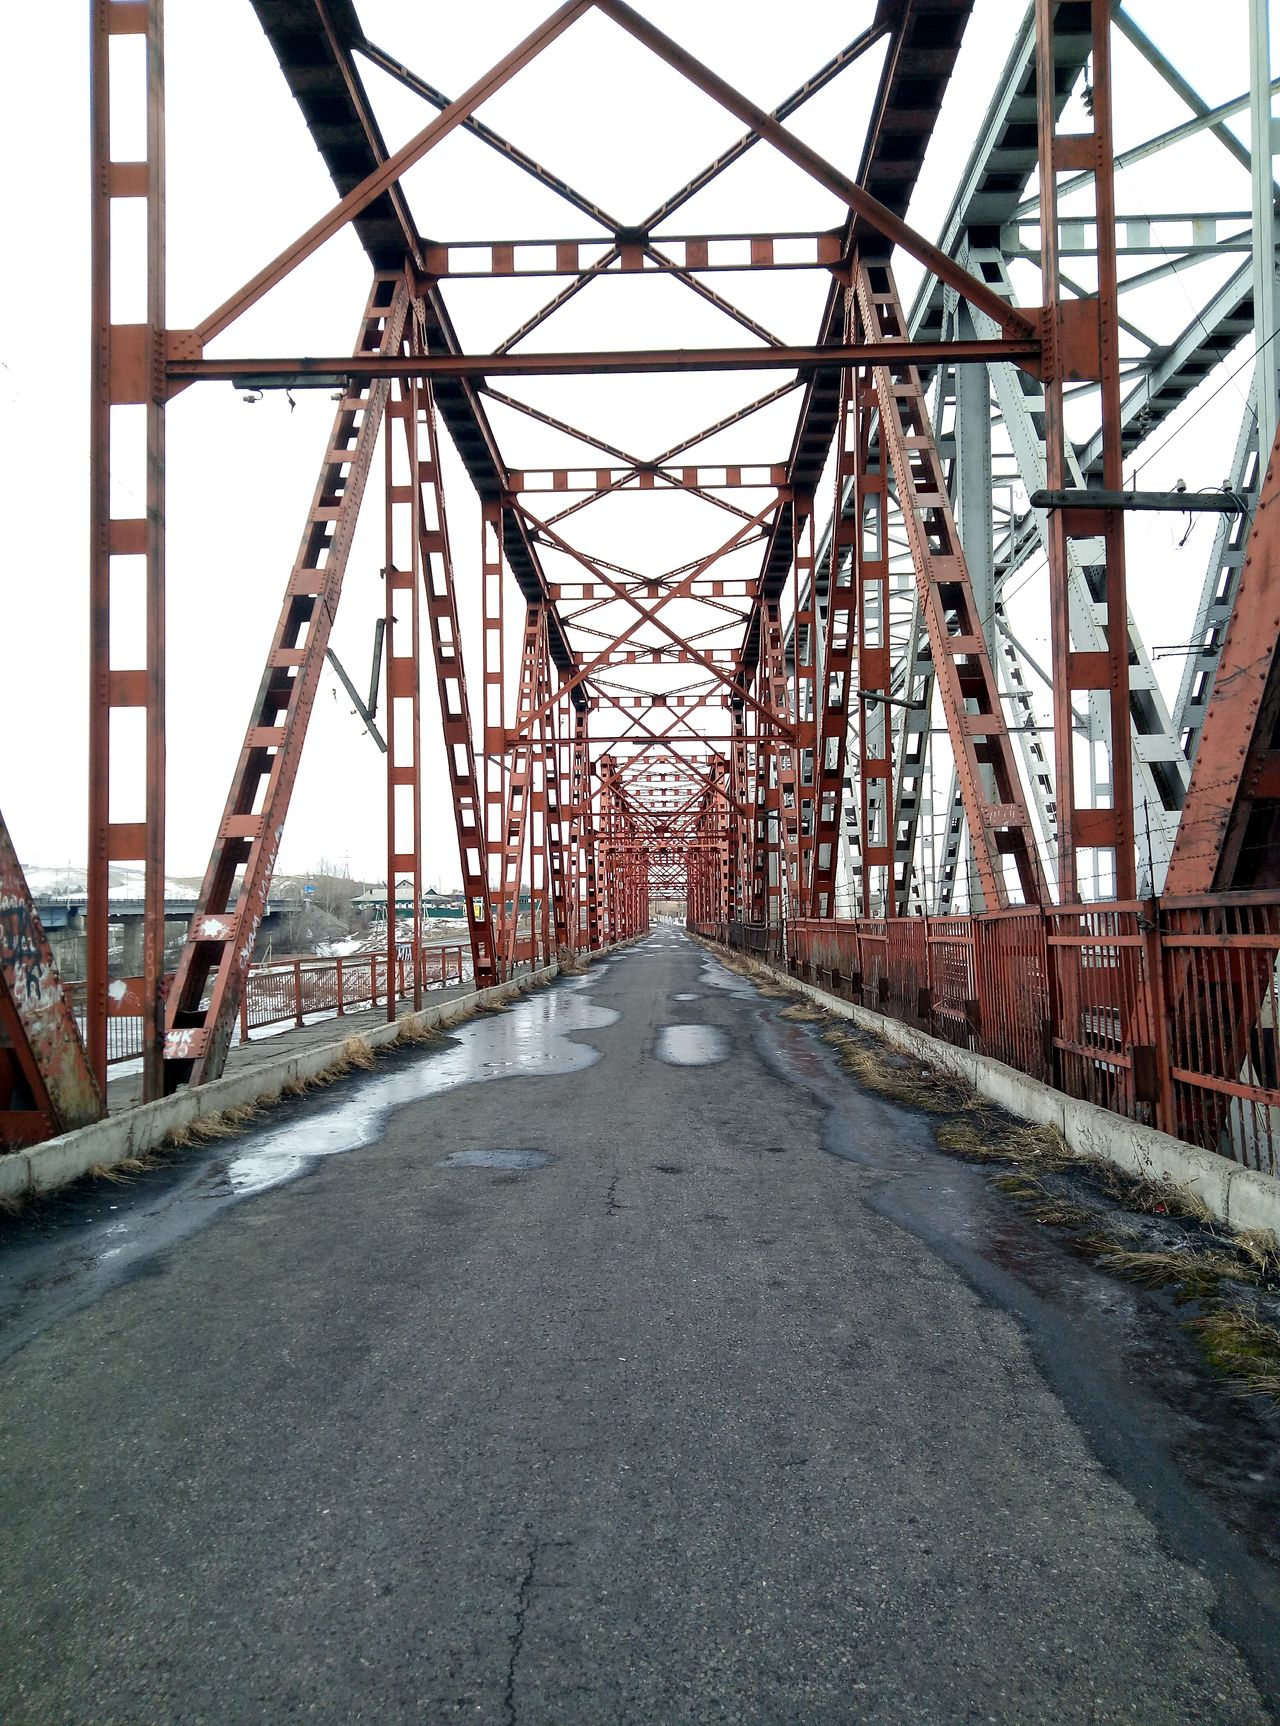 мост Urban Brige Abakan Siberia, Russia Khakasia No People Architecture The Secret Spaces